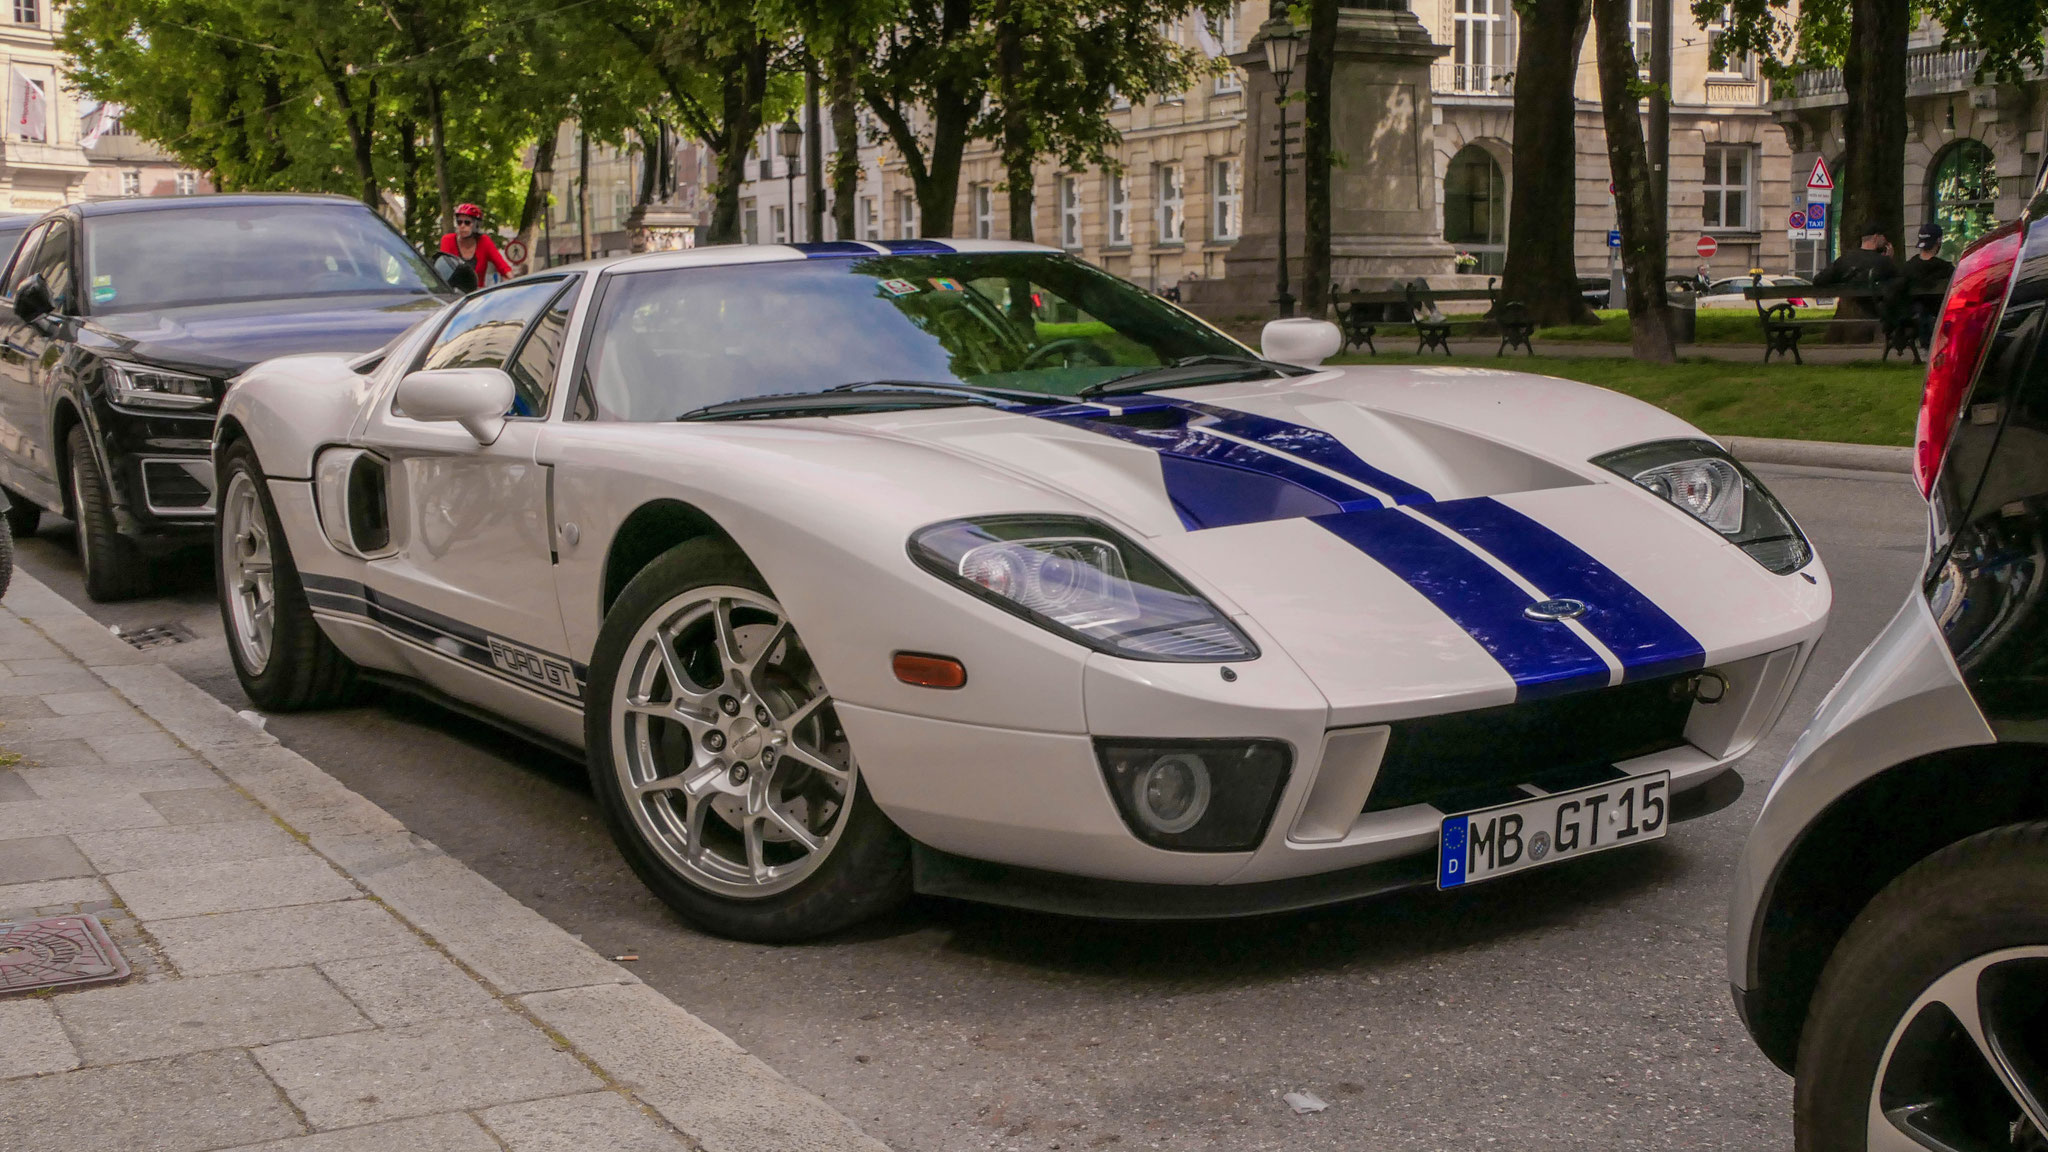 Ford GT - MB-GT-15